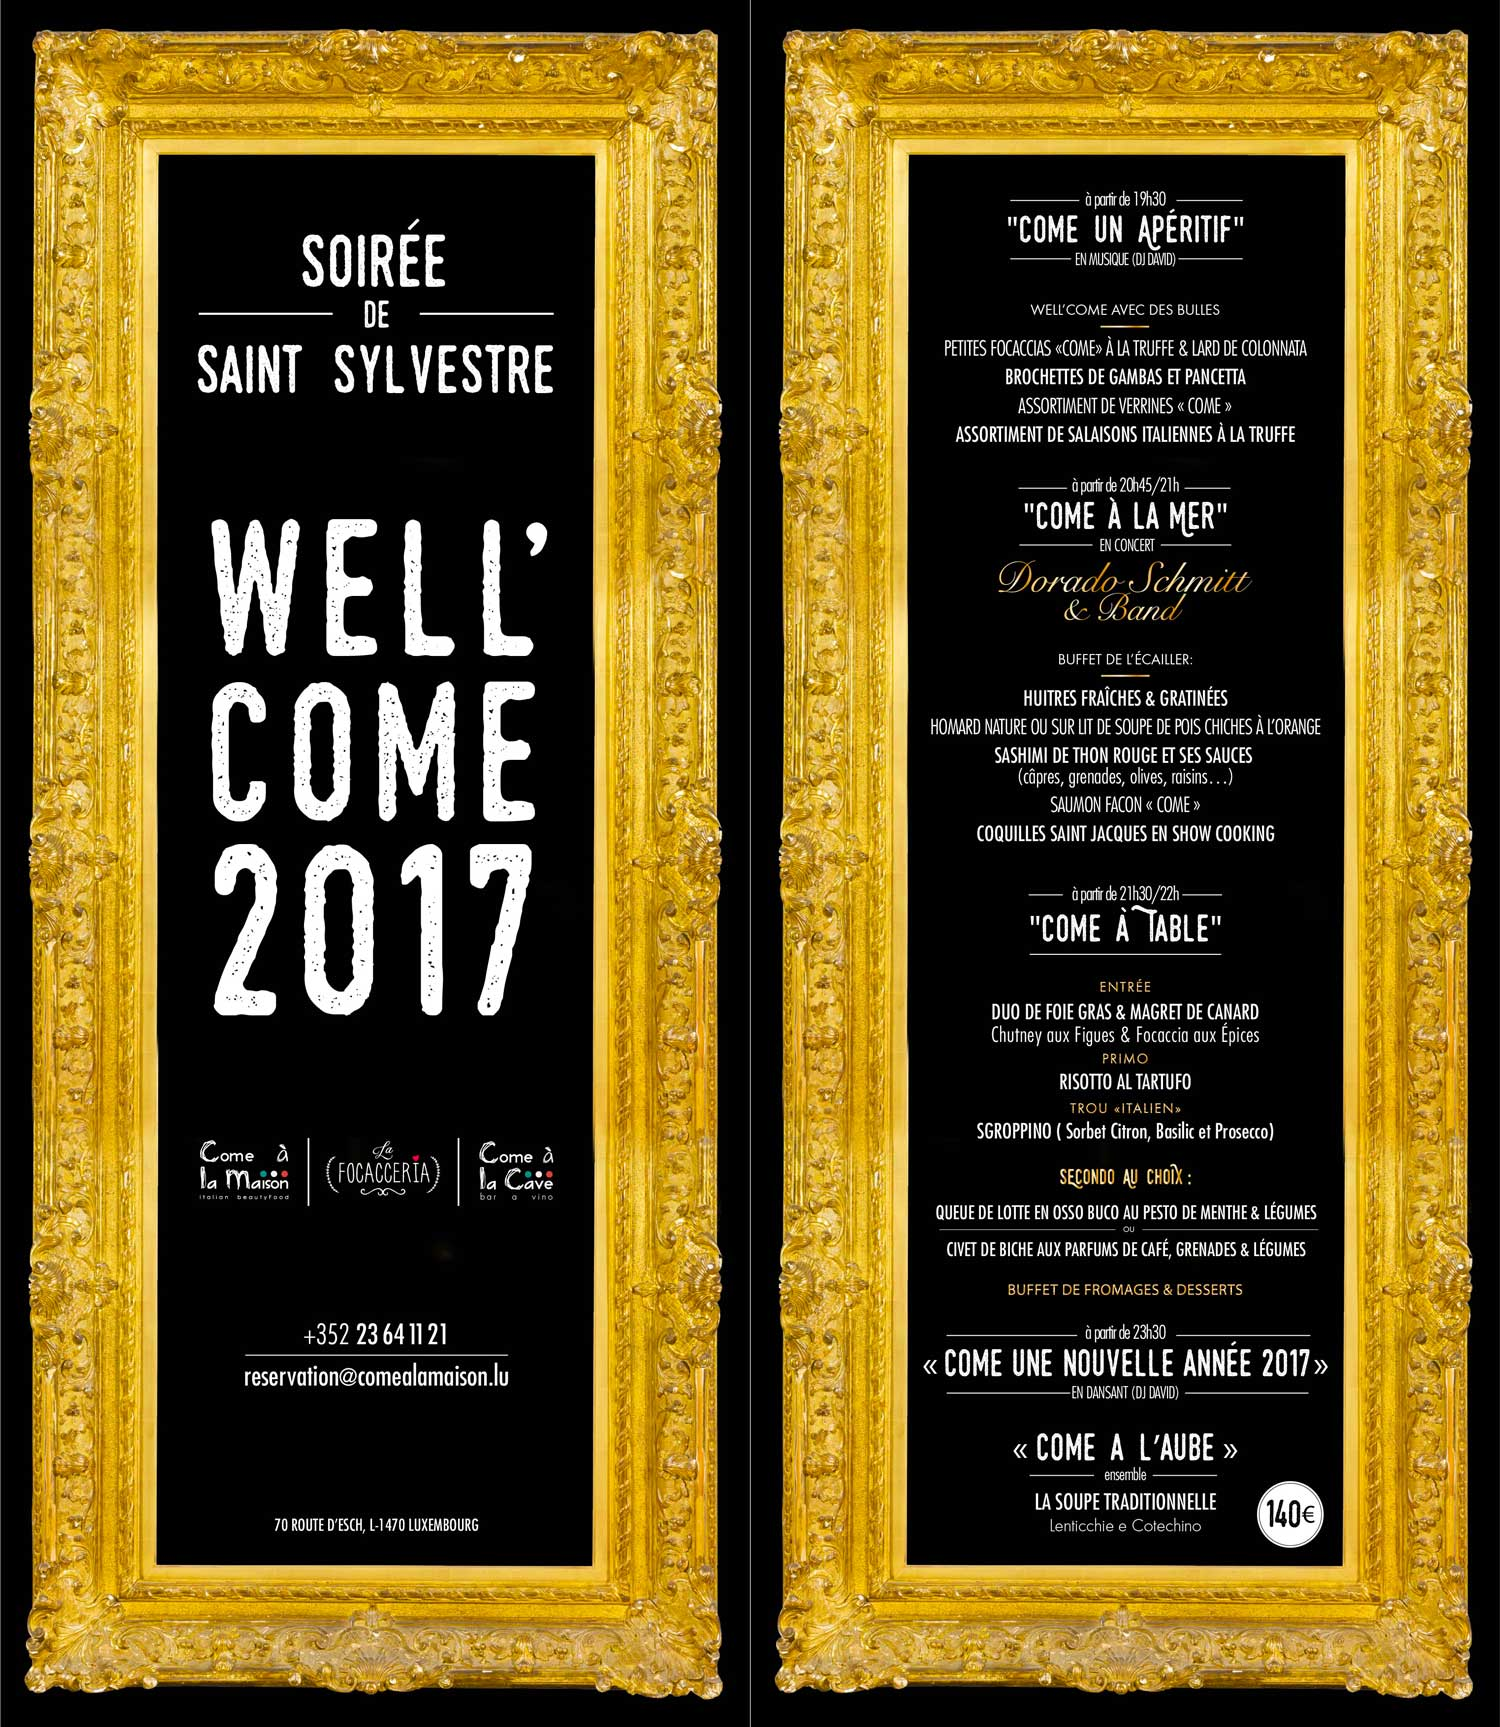 WELL'COME 2017